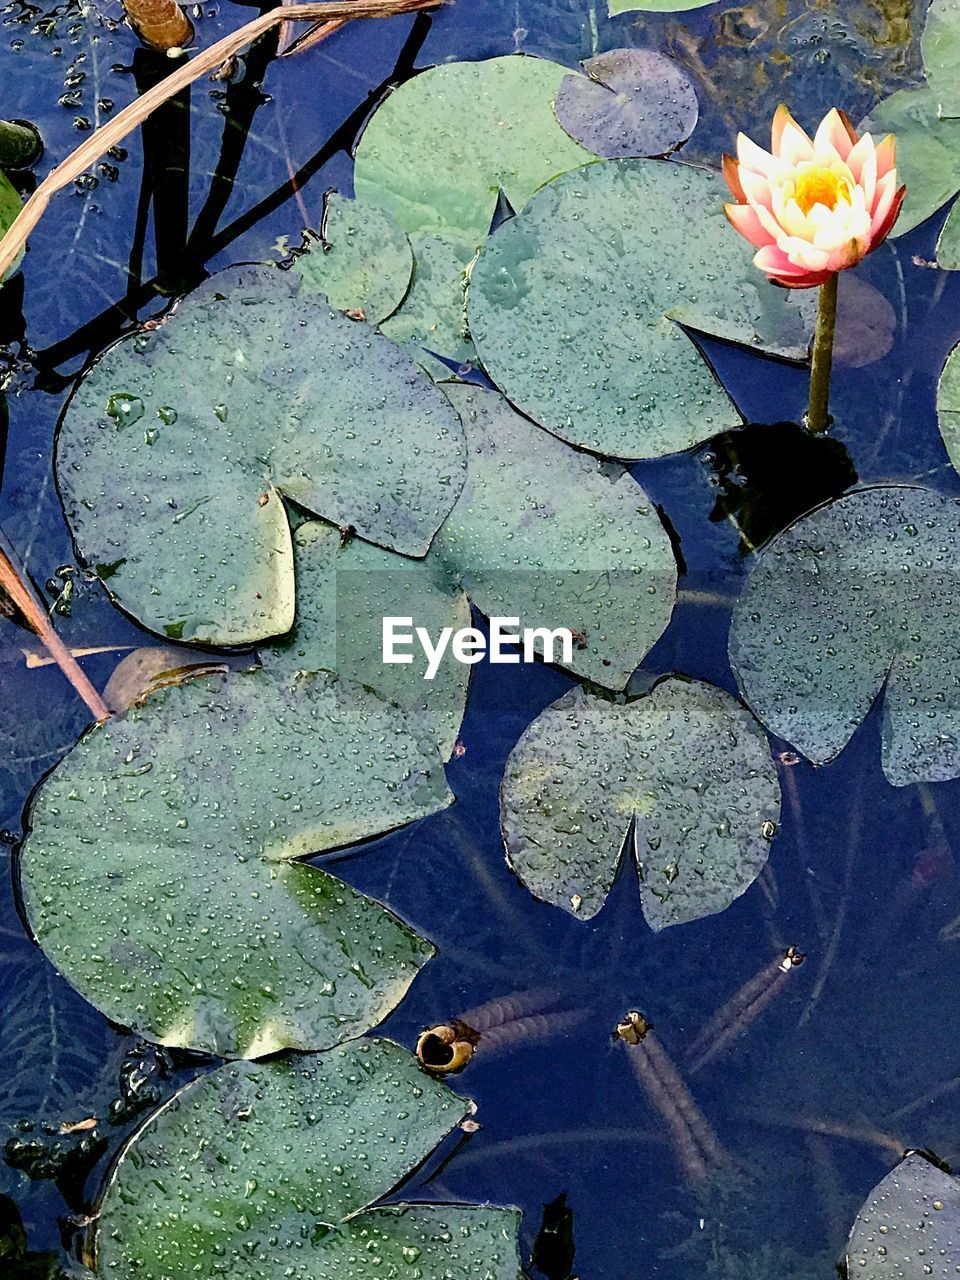 flower, plant, floating, water lily, floating on water, beauty in nature, nature, flowering plant, lake, leaf, green color, plant part, high angle view, freshness, growth, day, water, no people, close-up, flower head, outdoors, lotus water lily, leaves